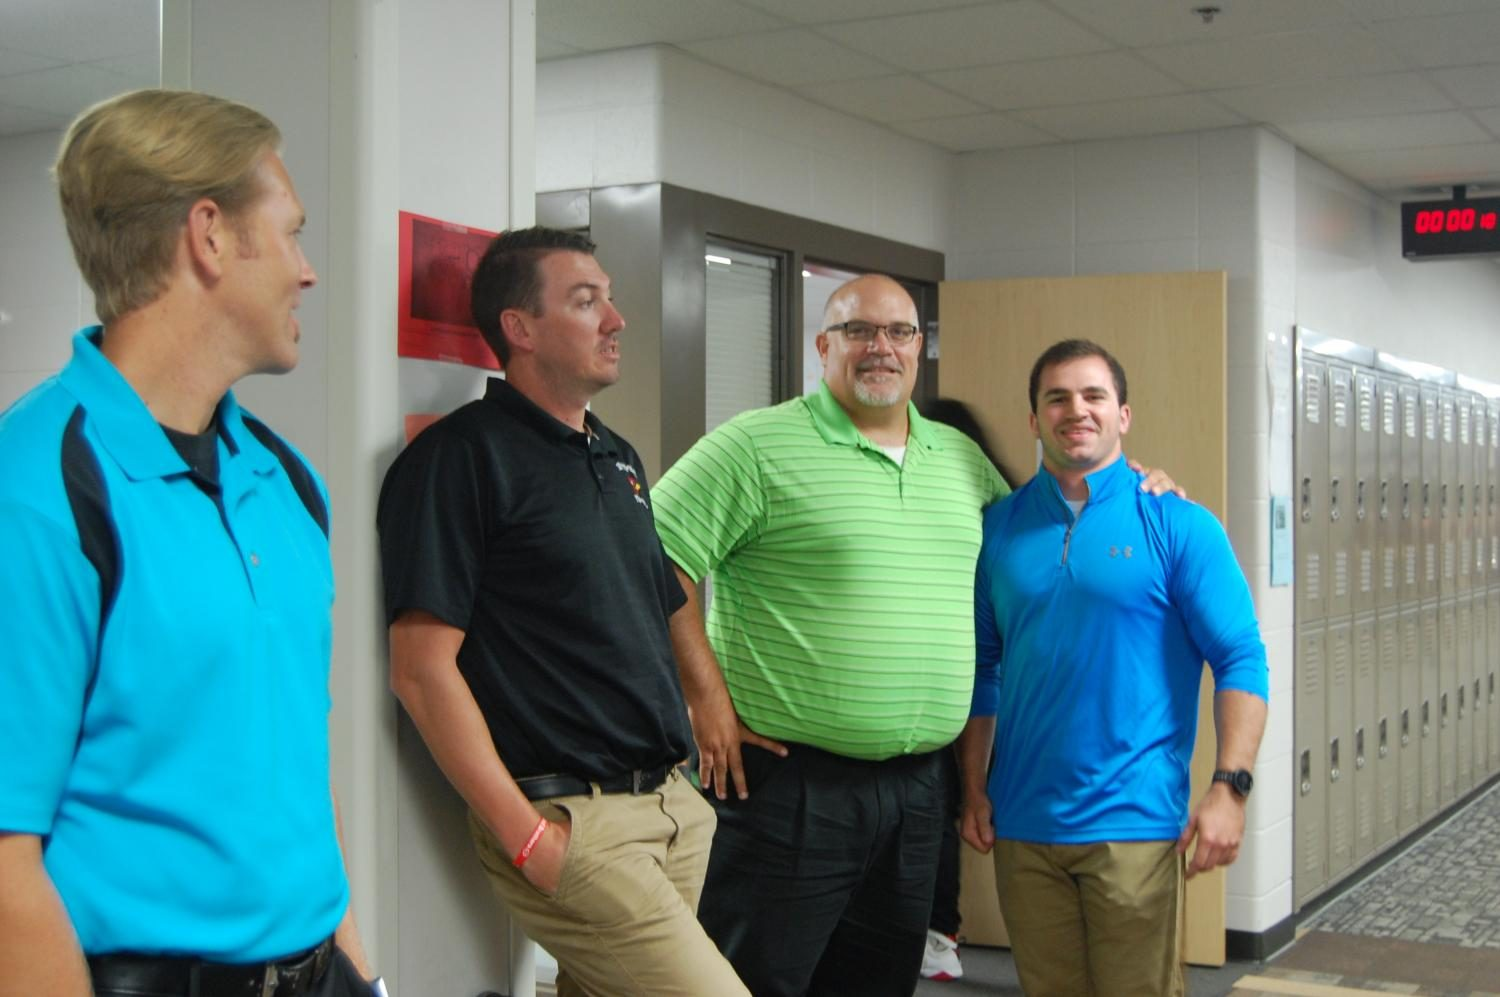 Social studies teachers Tyler Weatherford (left front), Ethan Braun (front right), Gene Lezon (left back) and Cody Braun (right back) are four social studies teachers who share a bond.